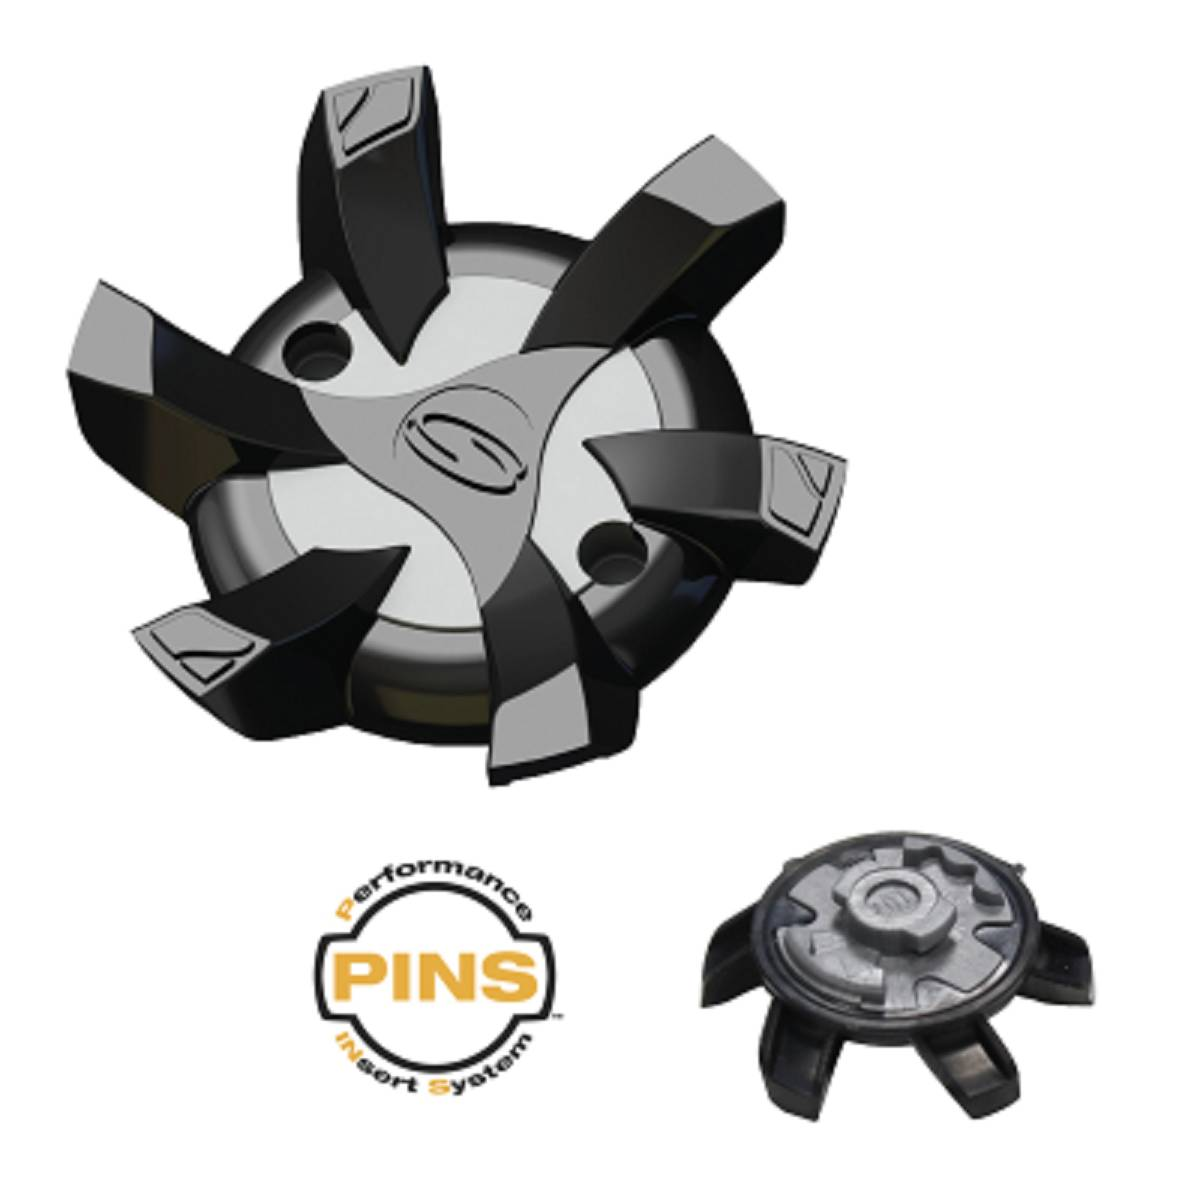 Golfsmith SOFTSPIKES STEALTH PINS